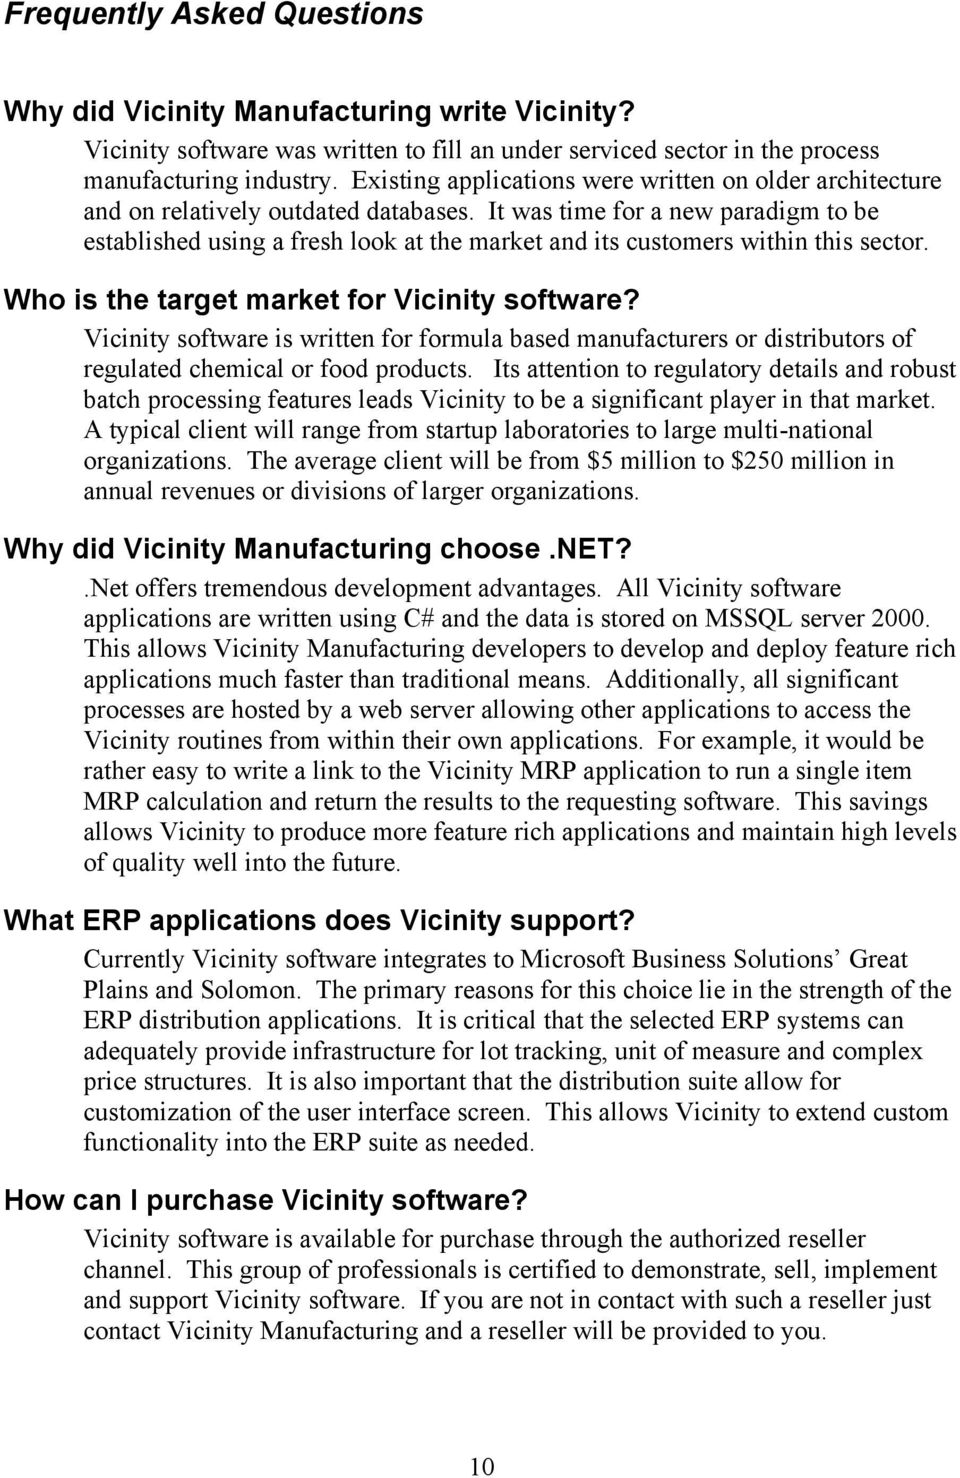 It was time for a new paradigm to be established using a fresh look at the market and its customers within this sector. Who is the target market for Vicinity software?